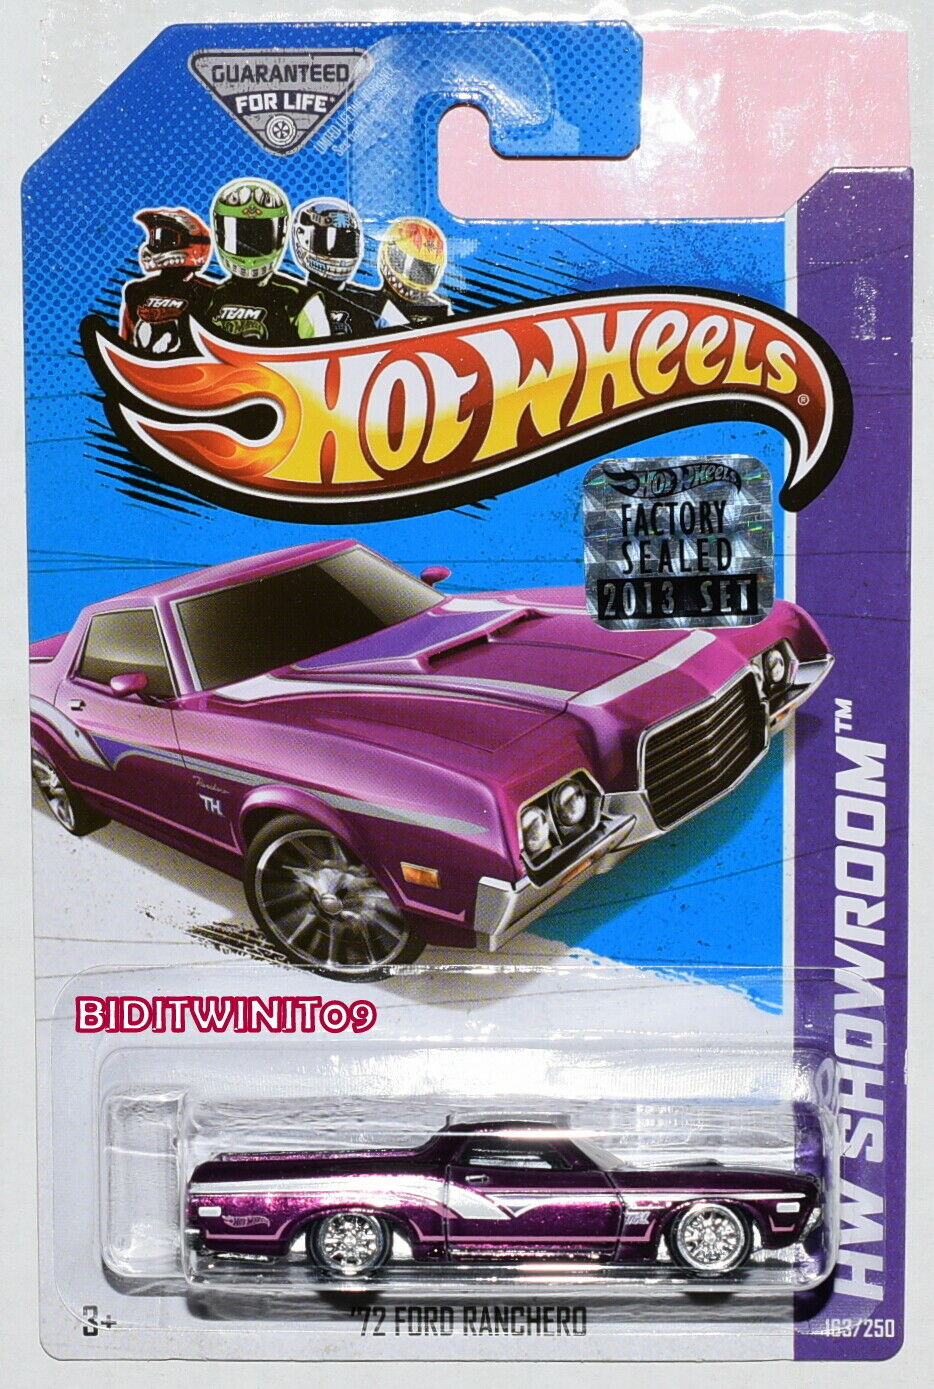 heta hjul 2013 Hw Showroom Super Treasure Hunt'72 Ford Ranchero Sigillato